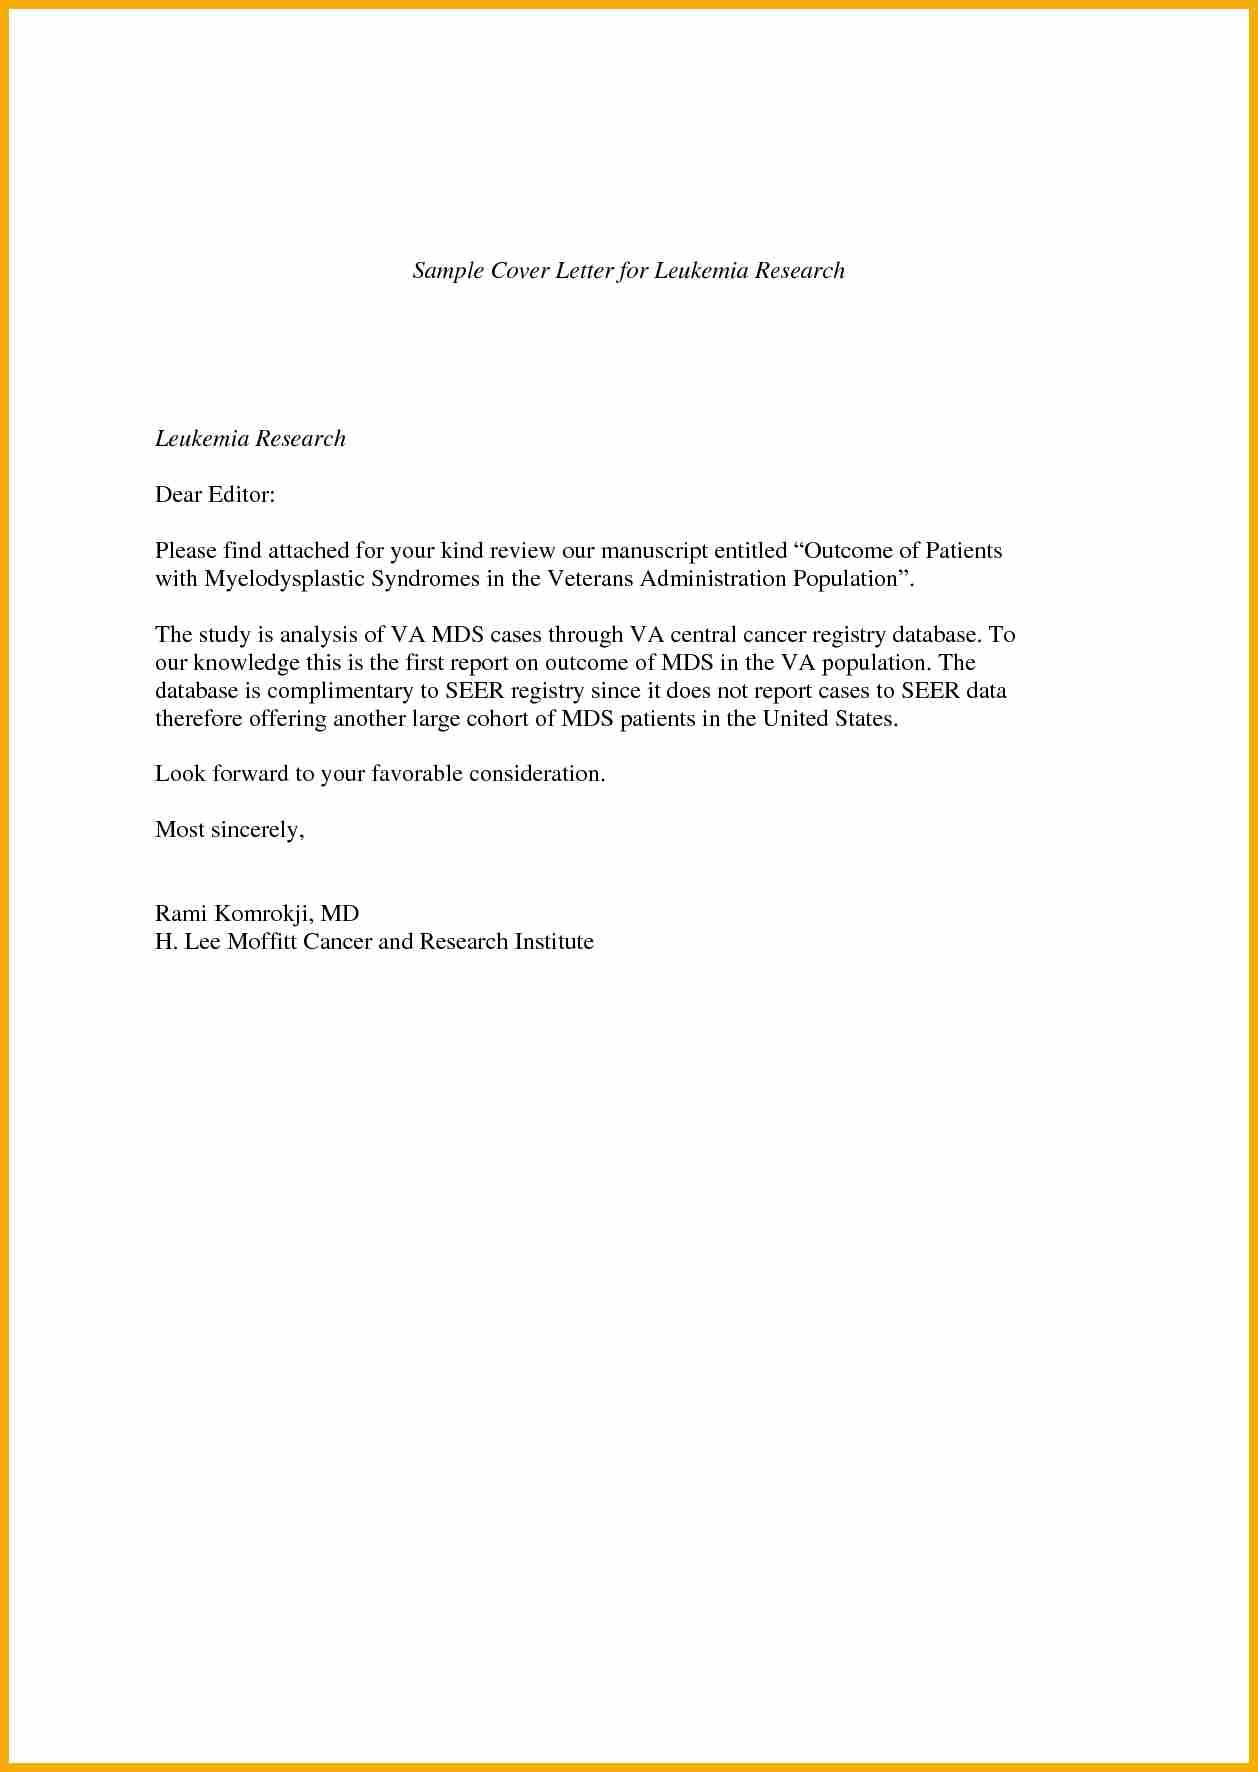 Letter Format For Report Submission. Short cover letterver letter example submission manuscript short  examples job Sample Cover Letter For Journal Submission Gallery